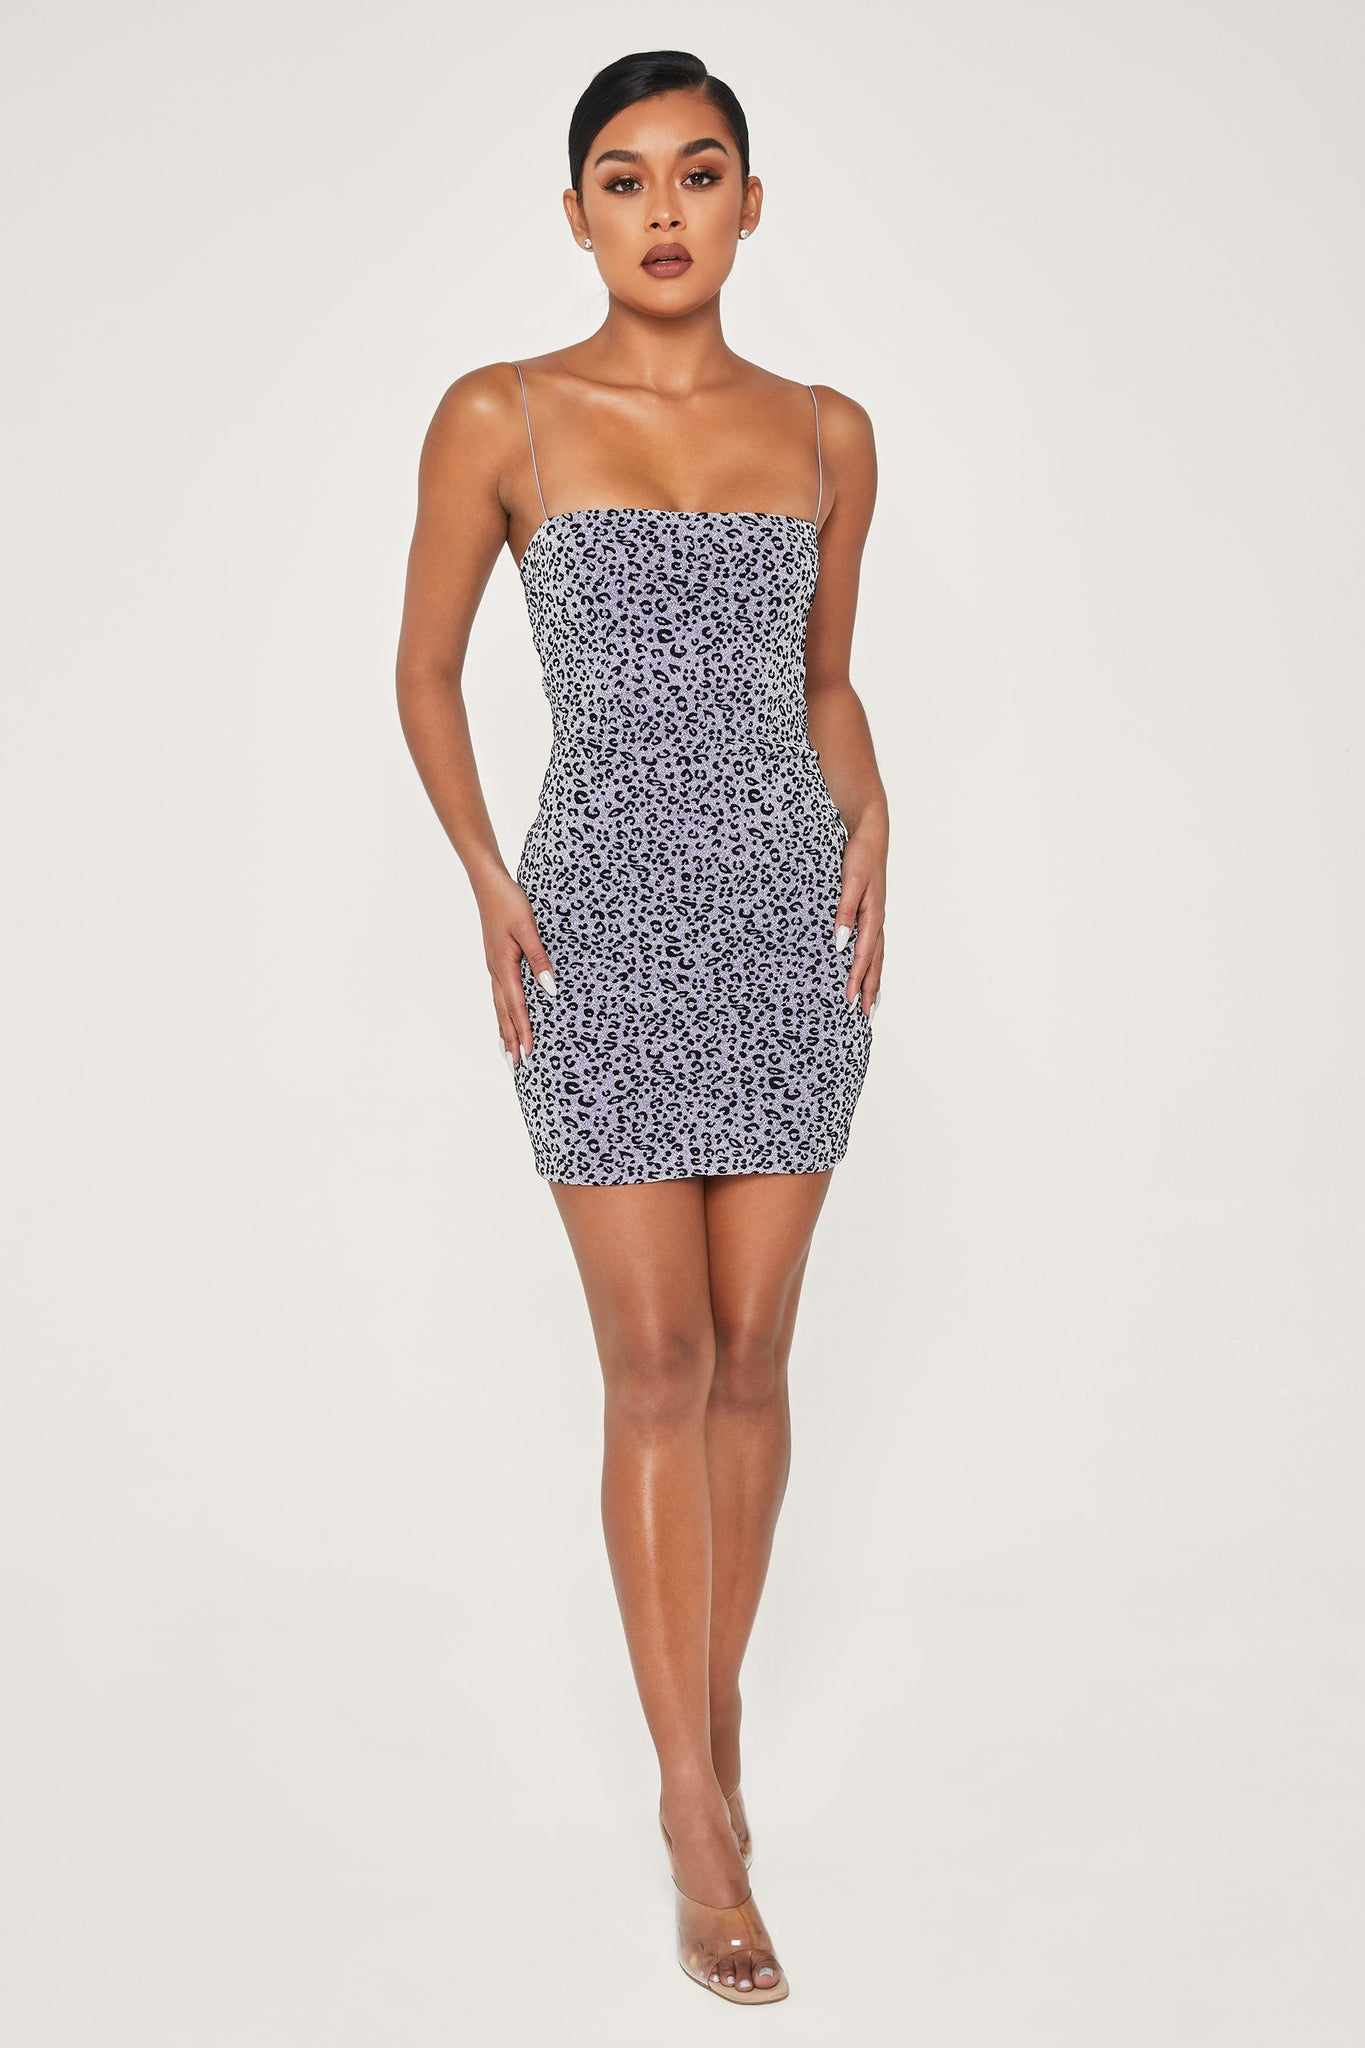 Mia Thin Strap Shimmer Leopard Bodycon Mini Dress - Silver - MESHKI